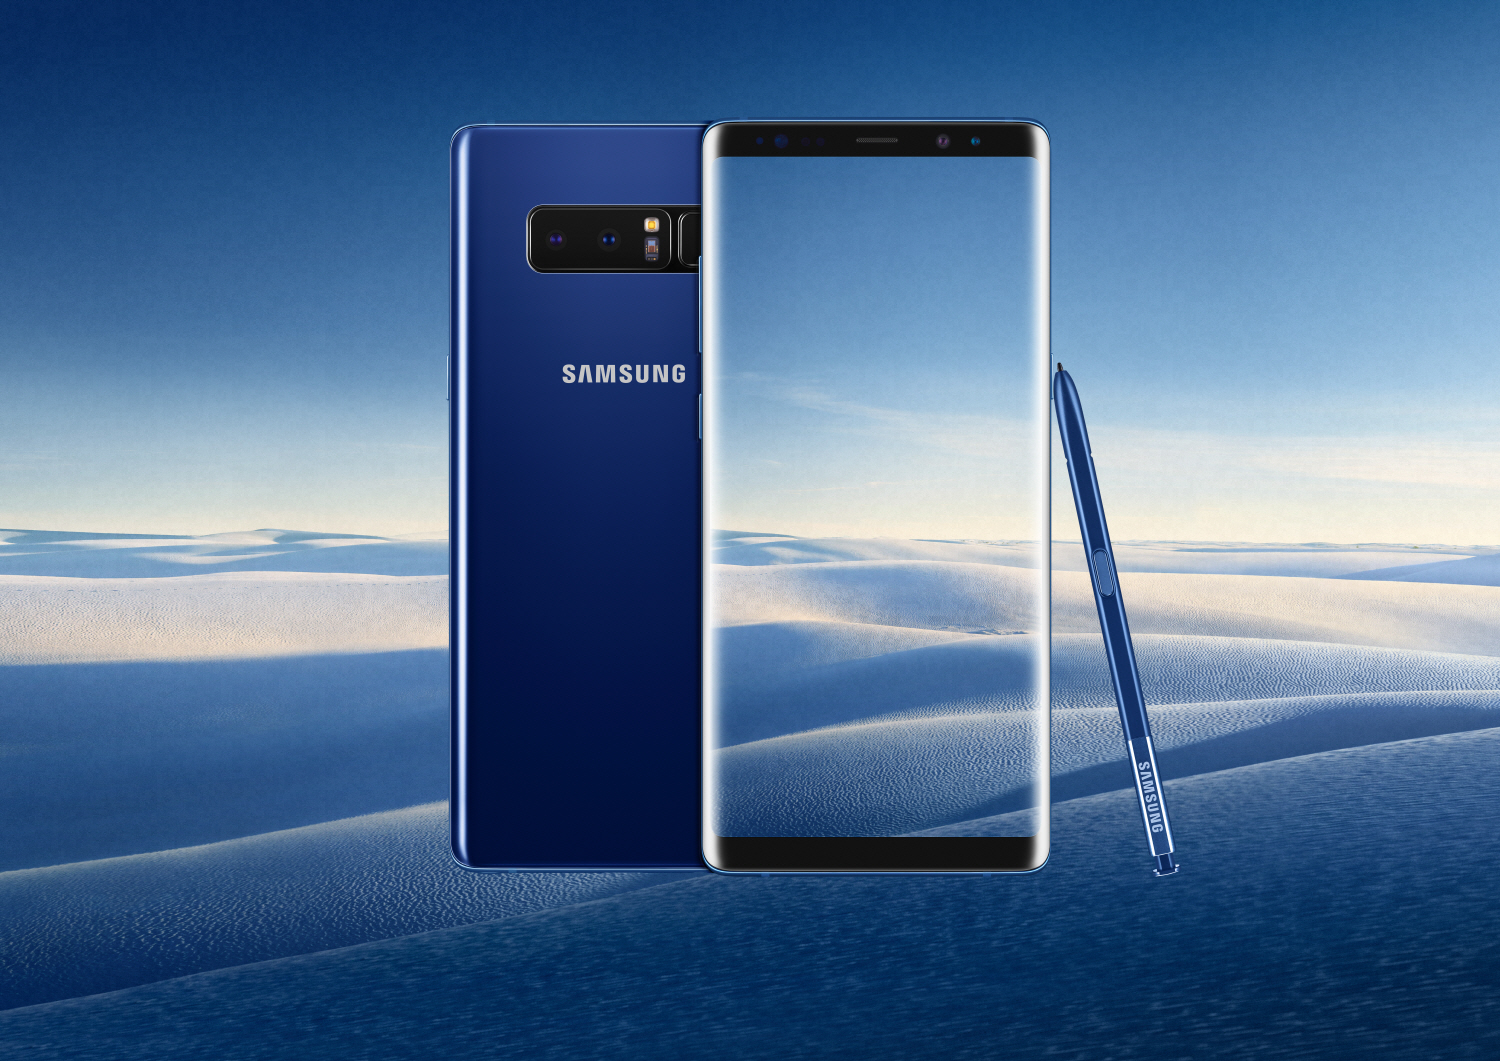 Blue Sky 3d Wallpaper Samsung Galaxy Note 9 And Galaxy S9 May Have 512gb Of Storage